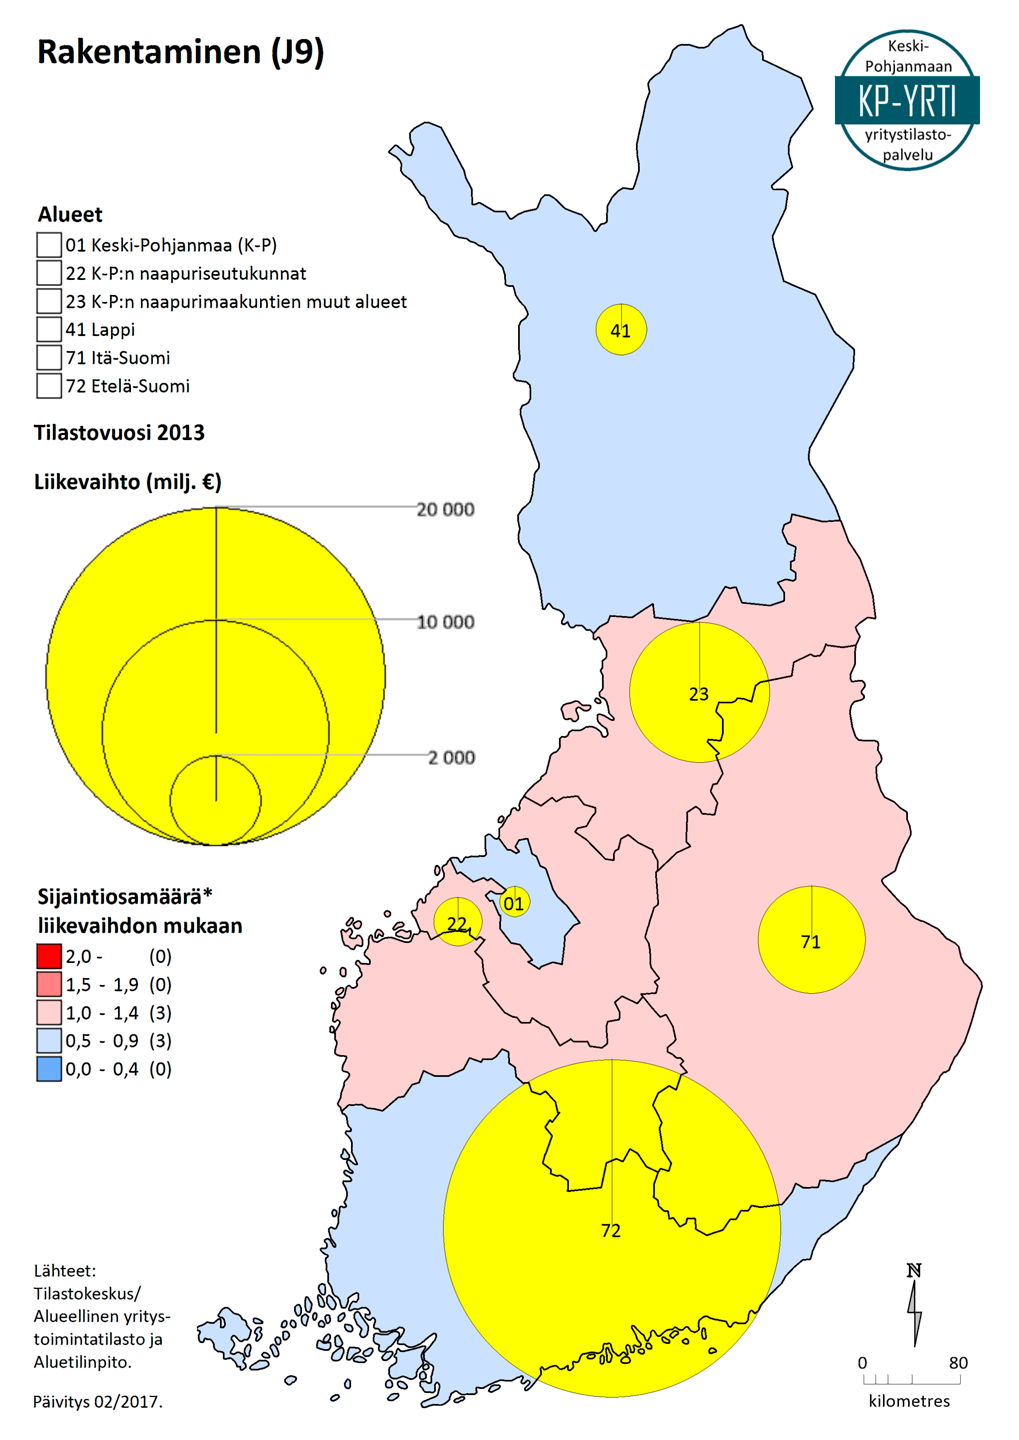 21-J9-map-lv-2013-p201702.png